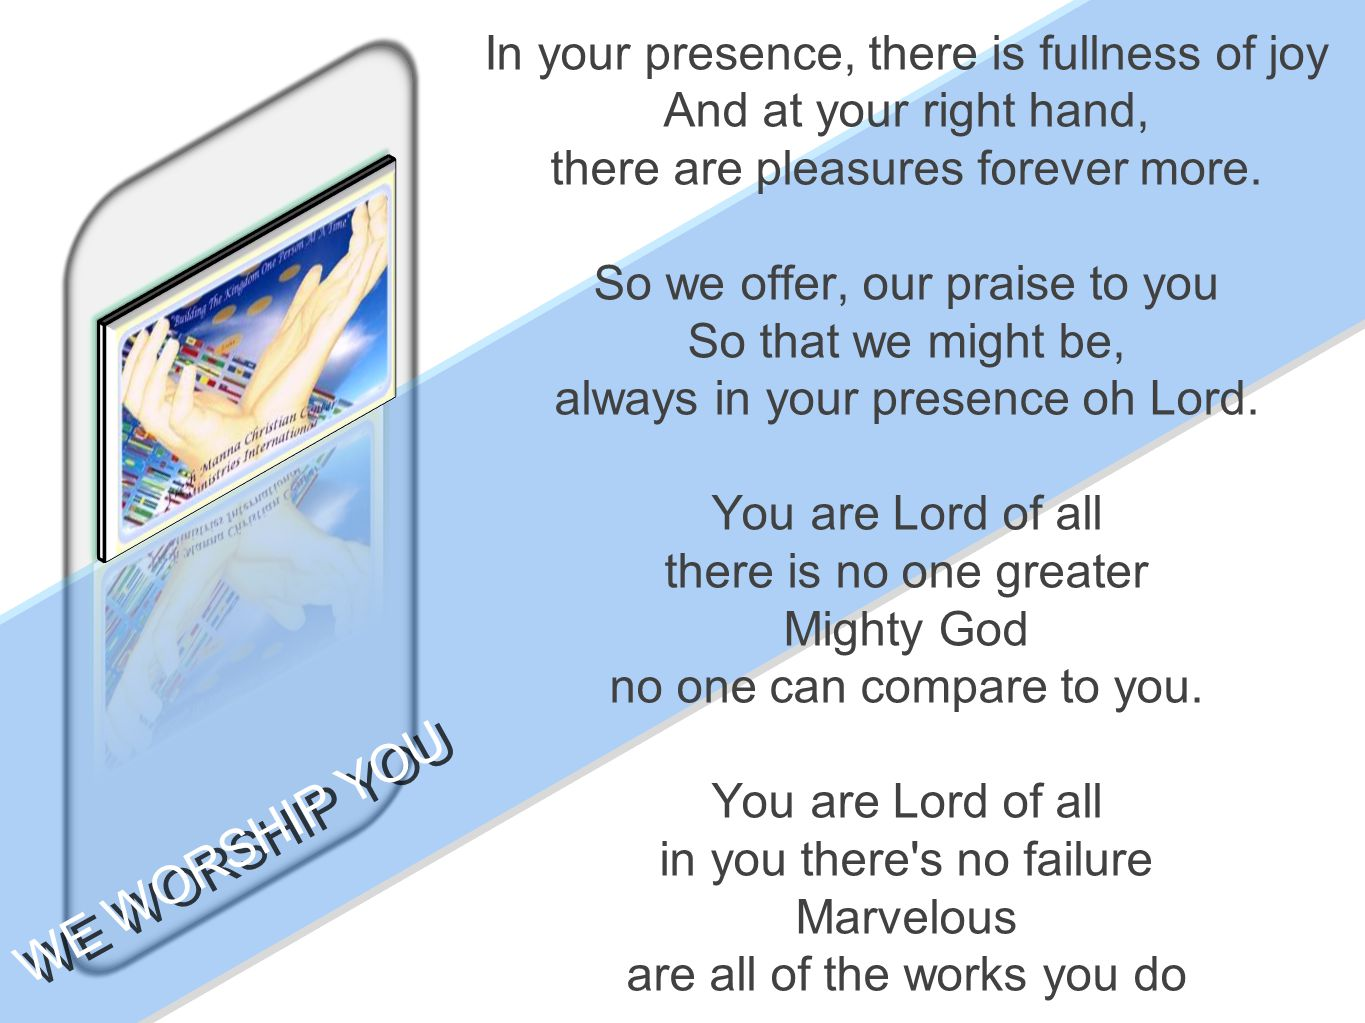 In your presence, there is fullness of joy And at your right hand, there are pleasures forever more. So we offer, our praise to you So that we might b